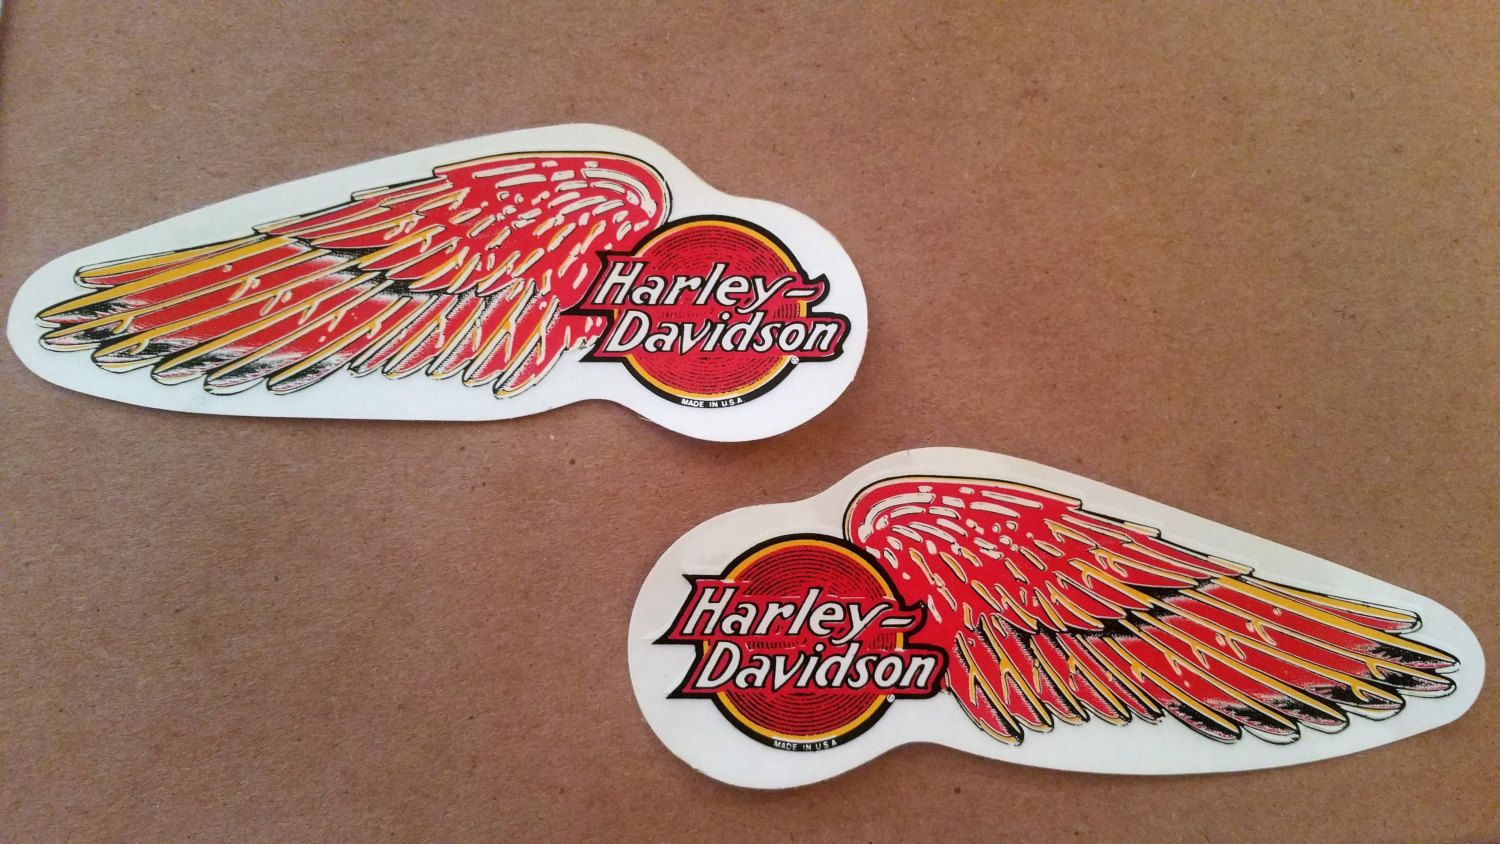 Set Of 2 Rare Small Vintage Harley Davidson Red Wings Tank Decal Sticker Hd Tank Wings Decal Sticker Retr Harley Davidson Decals Vintage Harley Harley Davidson